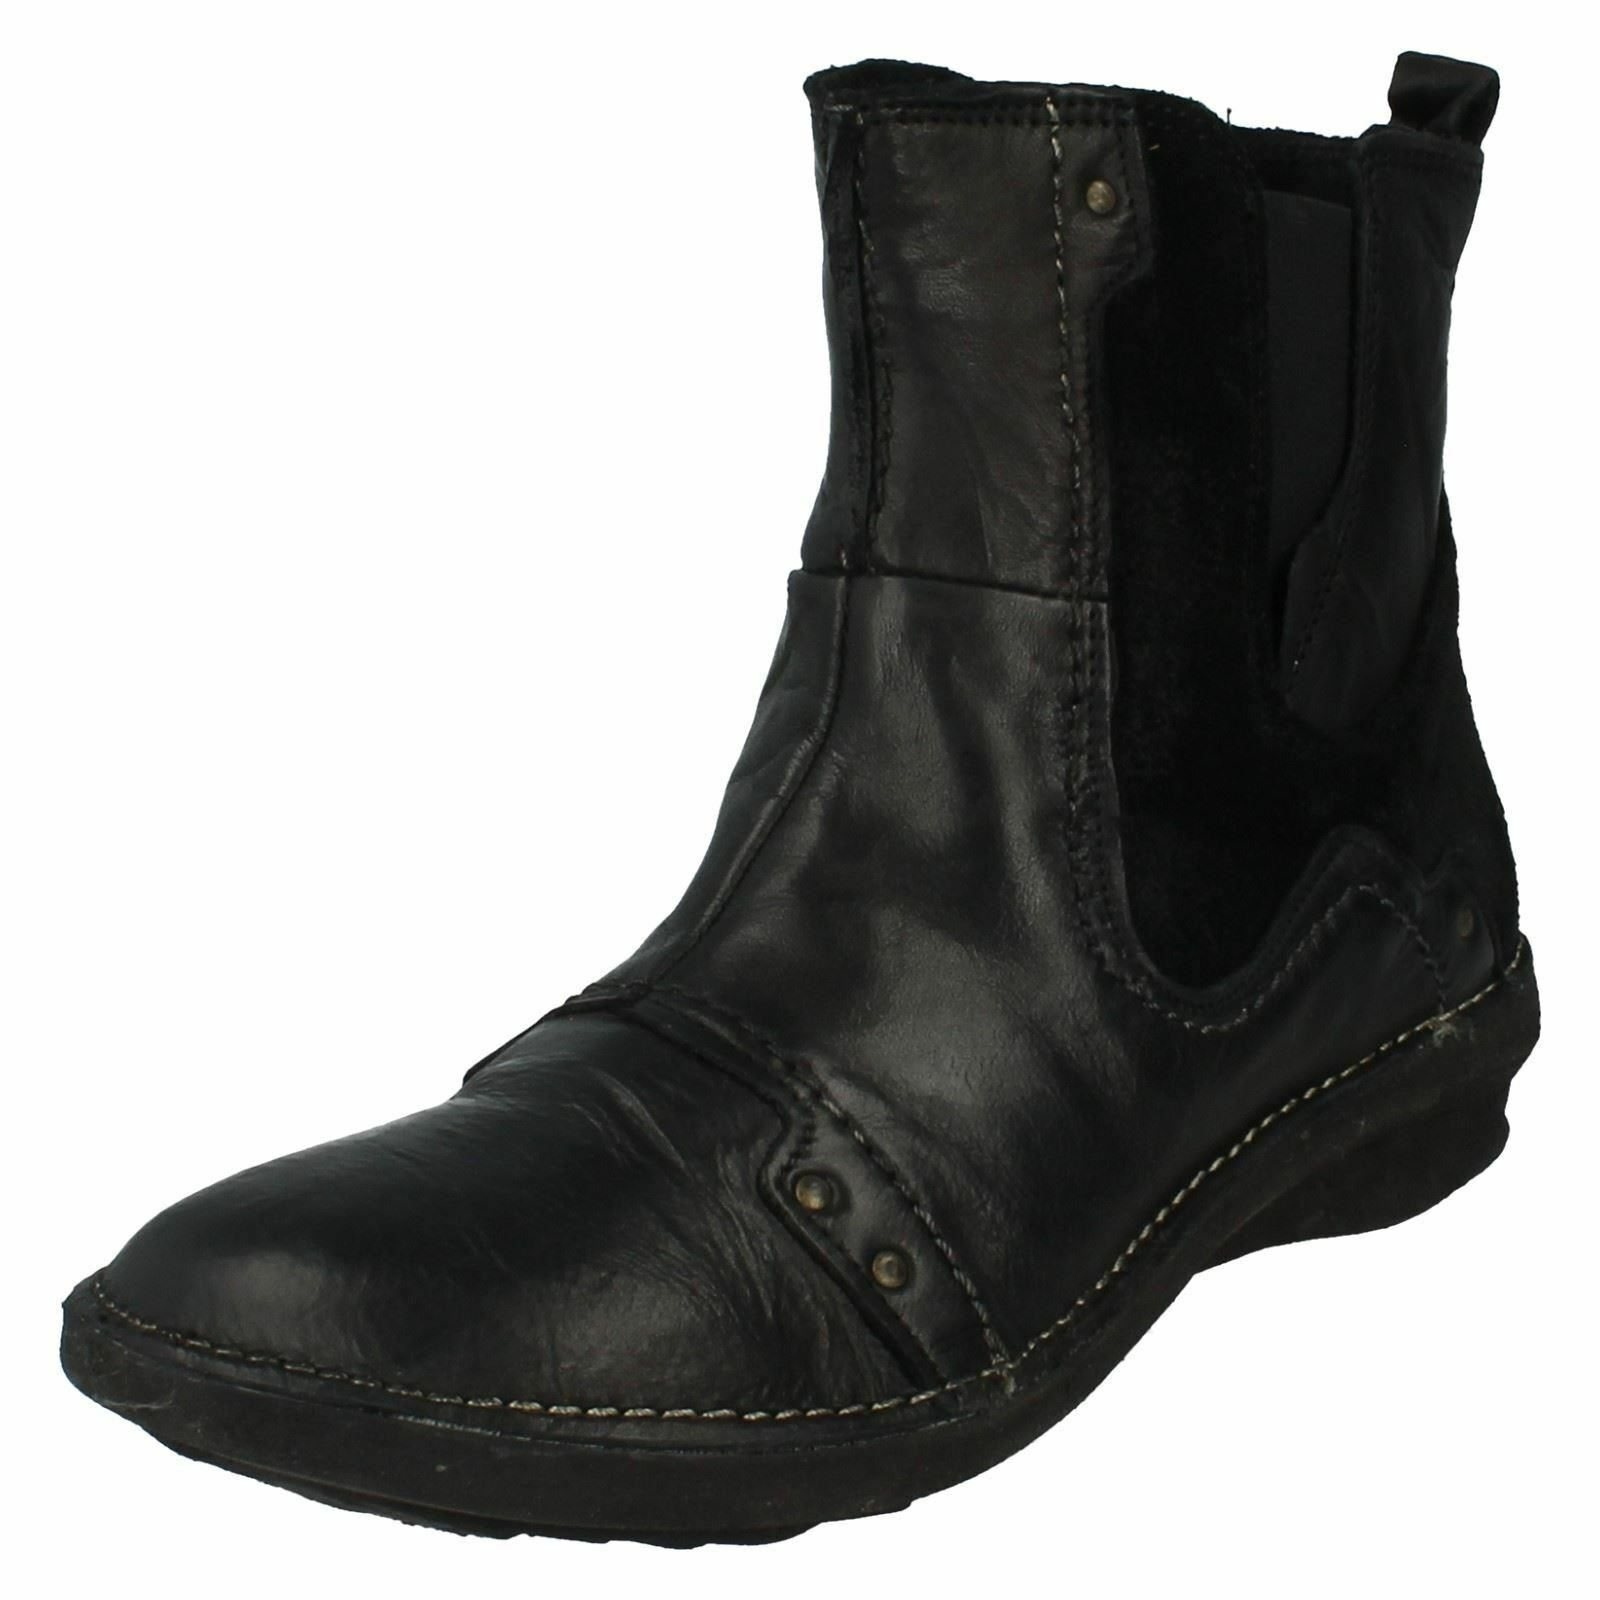 LADIES KHRIO BLACK CASUAL WINTER LEATHER ZIP UP FLAT ANKLE BOOTS  27146RNN